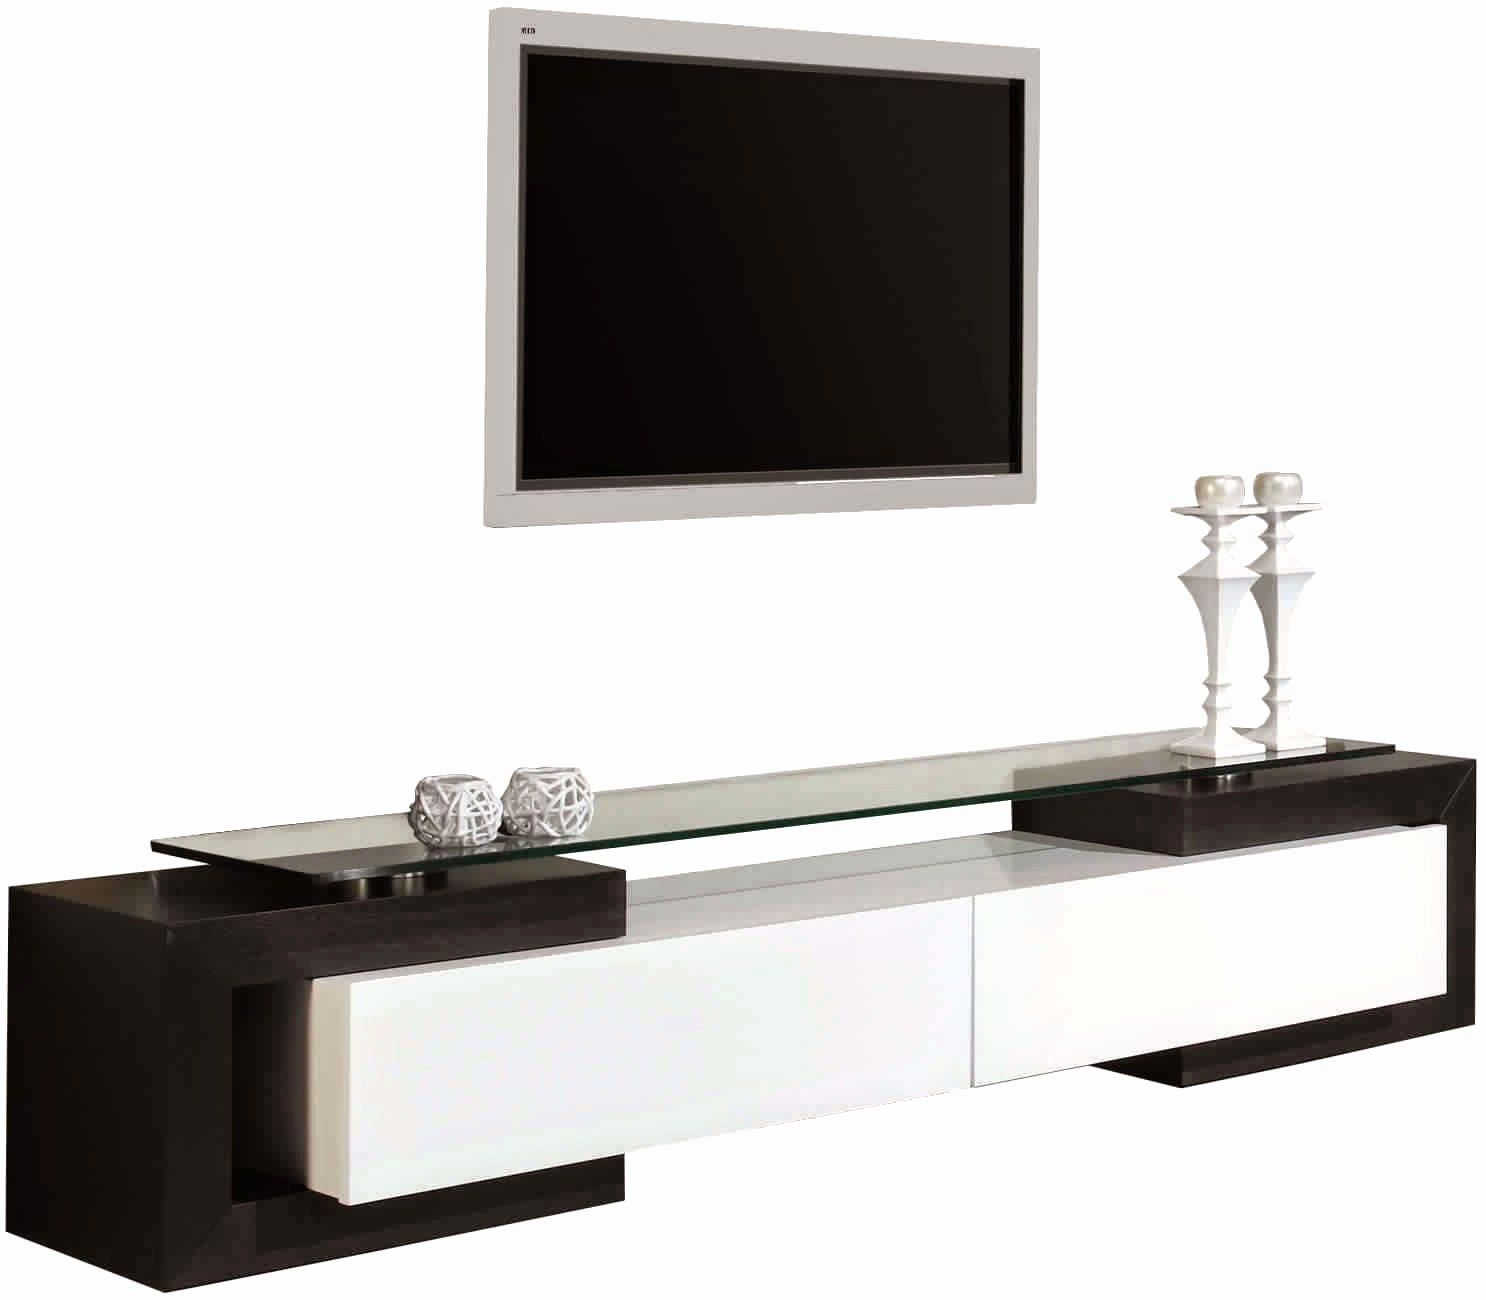 Best Of Television Chez Conforama Television Tables Kitchen